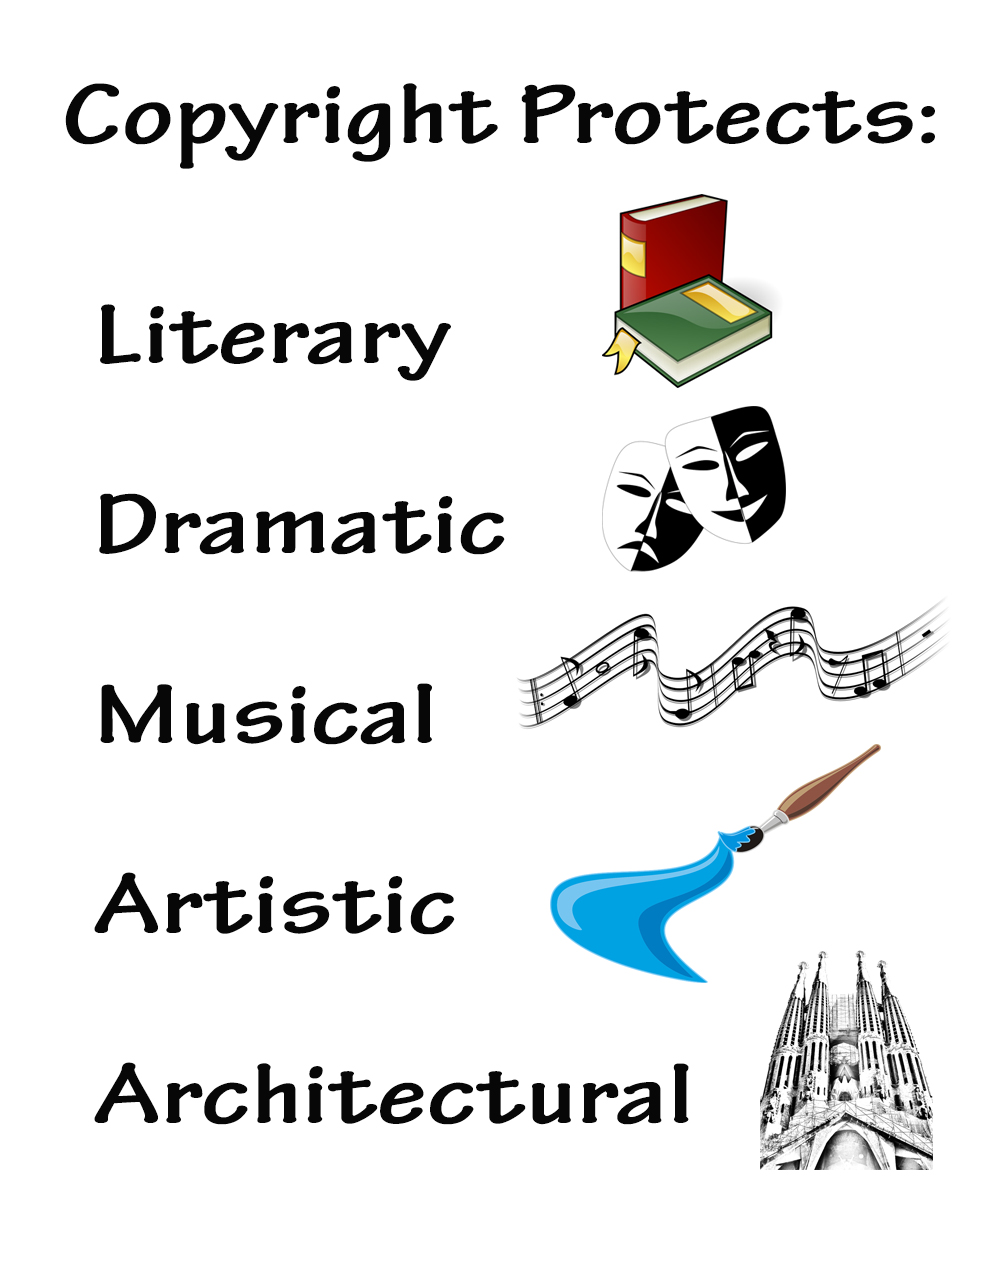 copyright dissertation uk Custom written dissertations for uk students 24/7 live support over 1000 dissertation writers call us now.